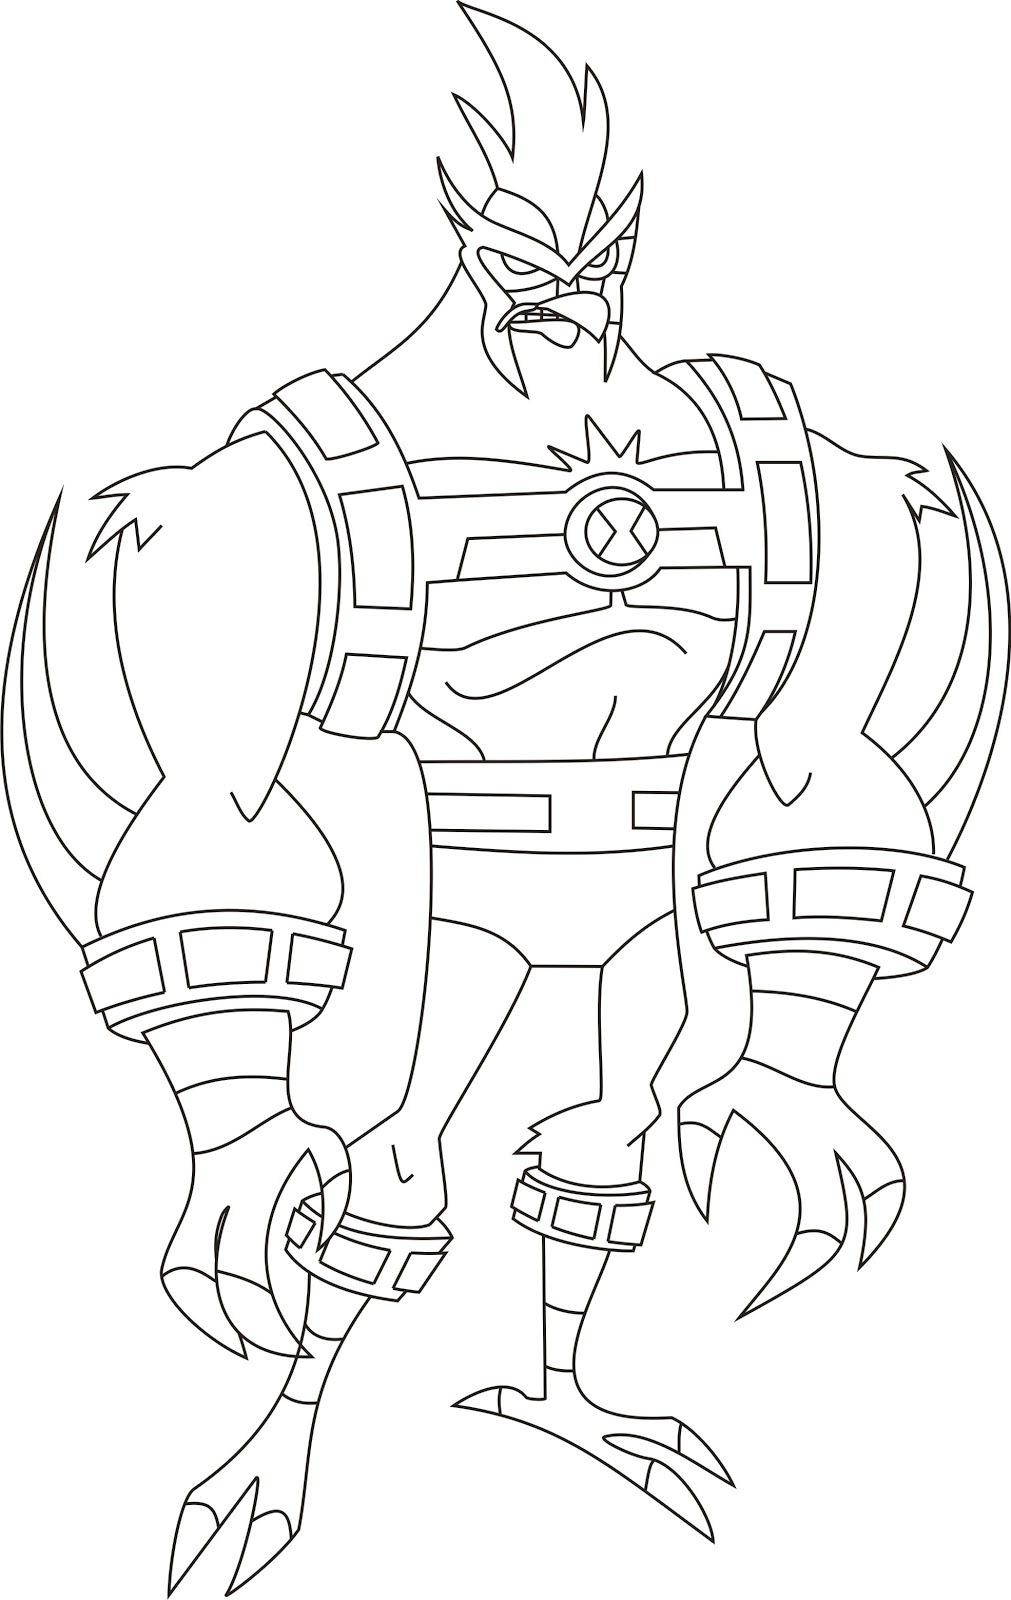 Ben 10 coloring pages 360coloringpages for Coloring pages of ben 10 aliens